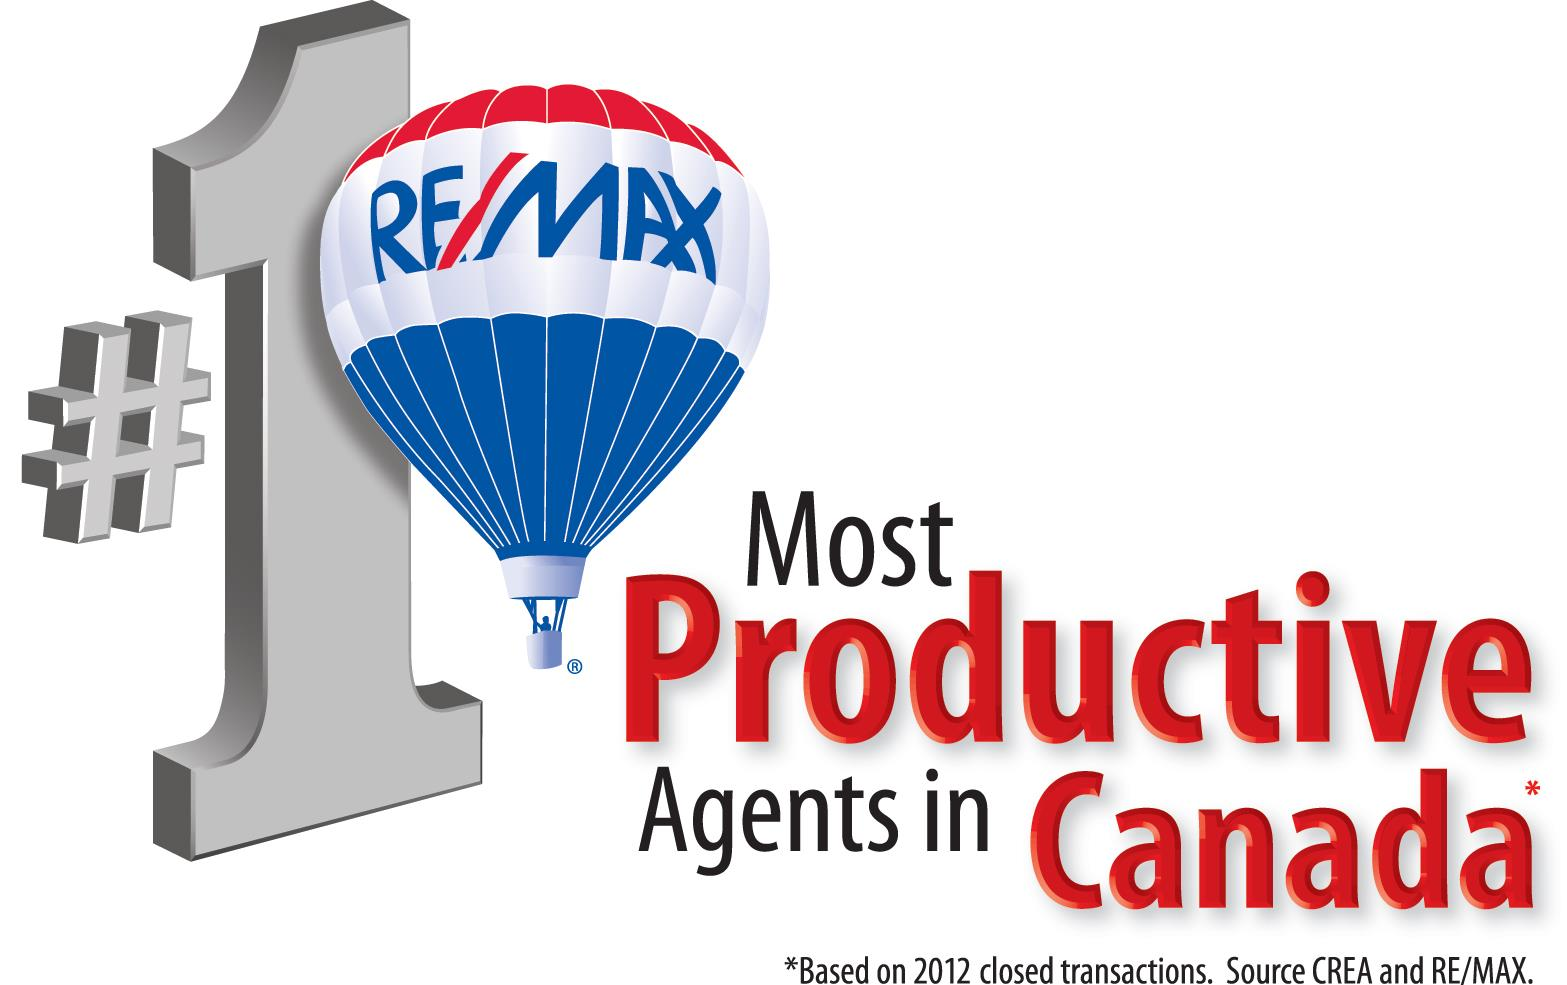 Most productive Realtors in Canada - RE/MAX